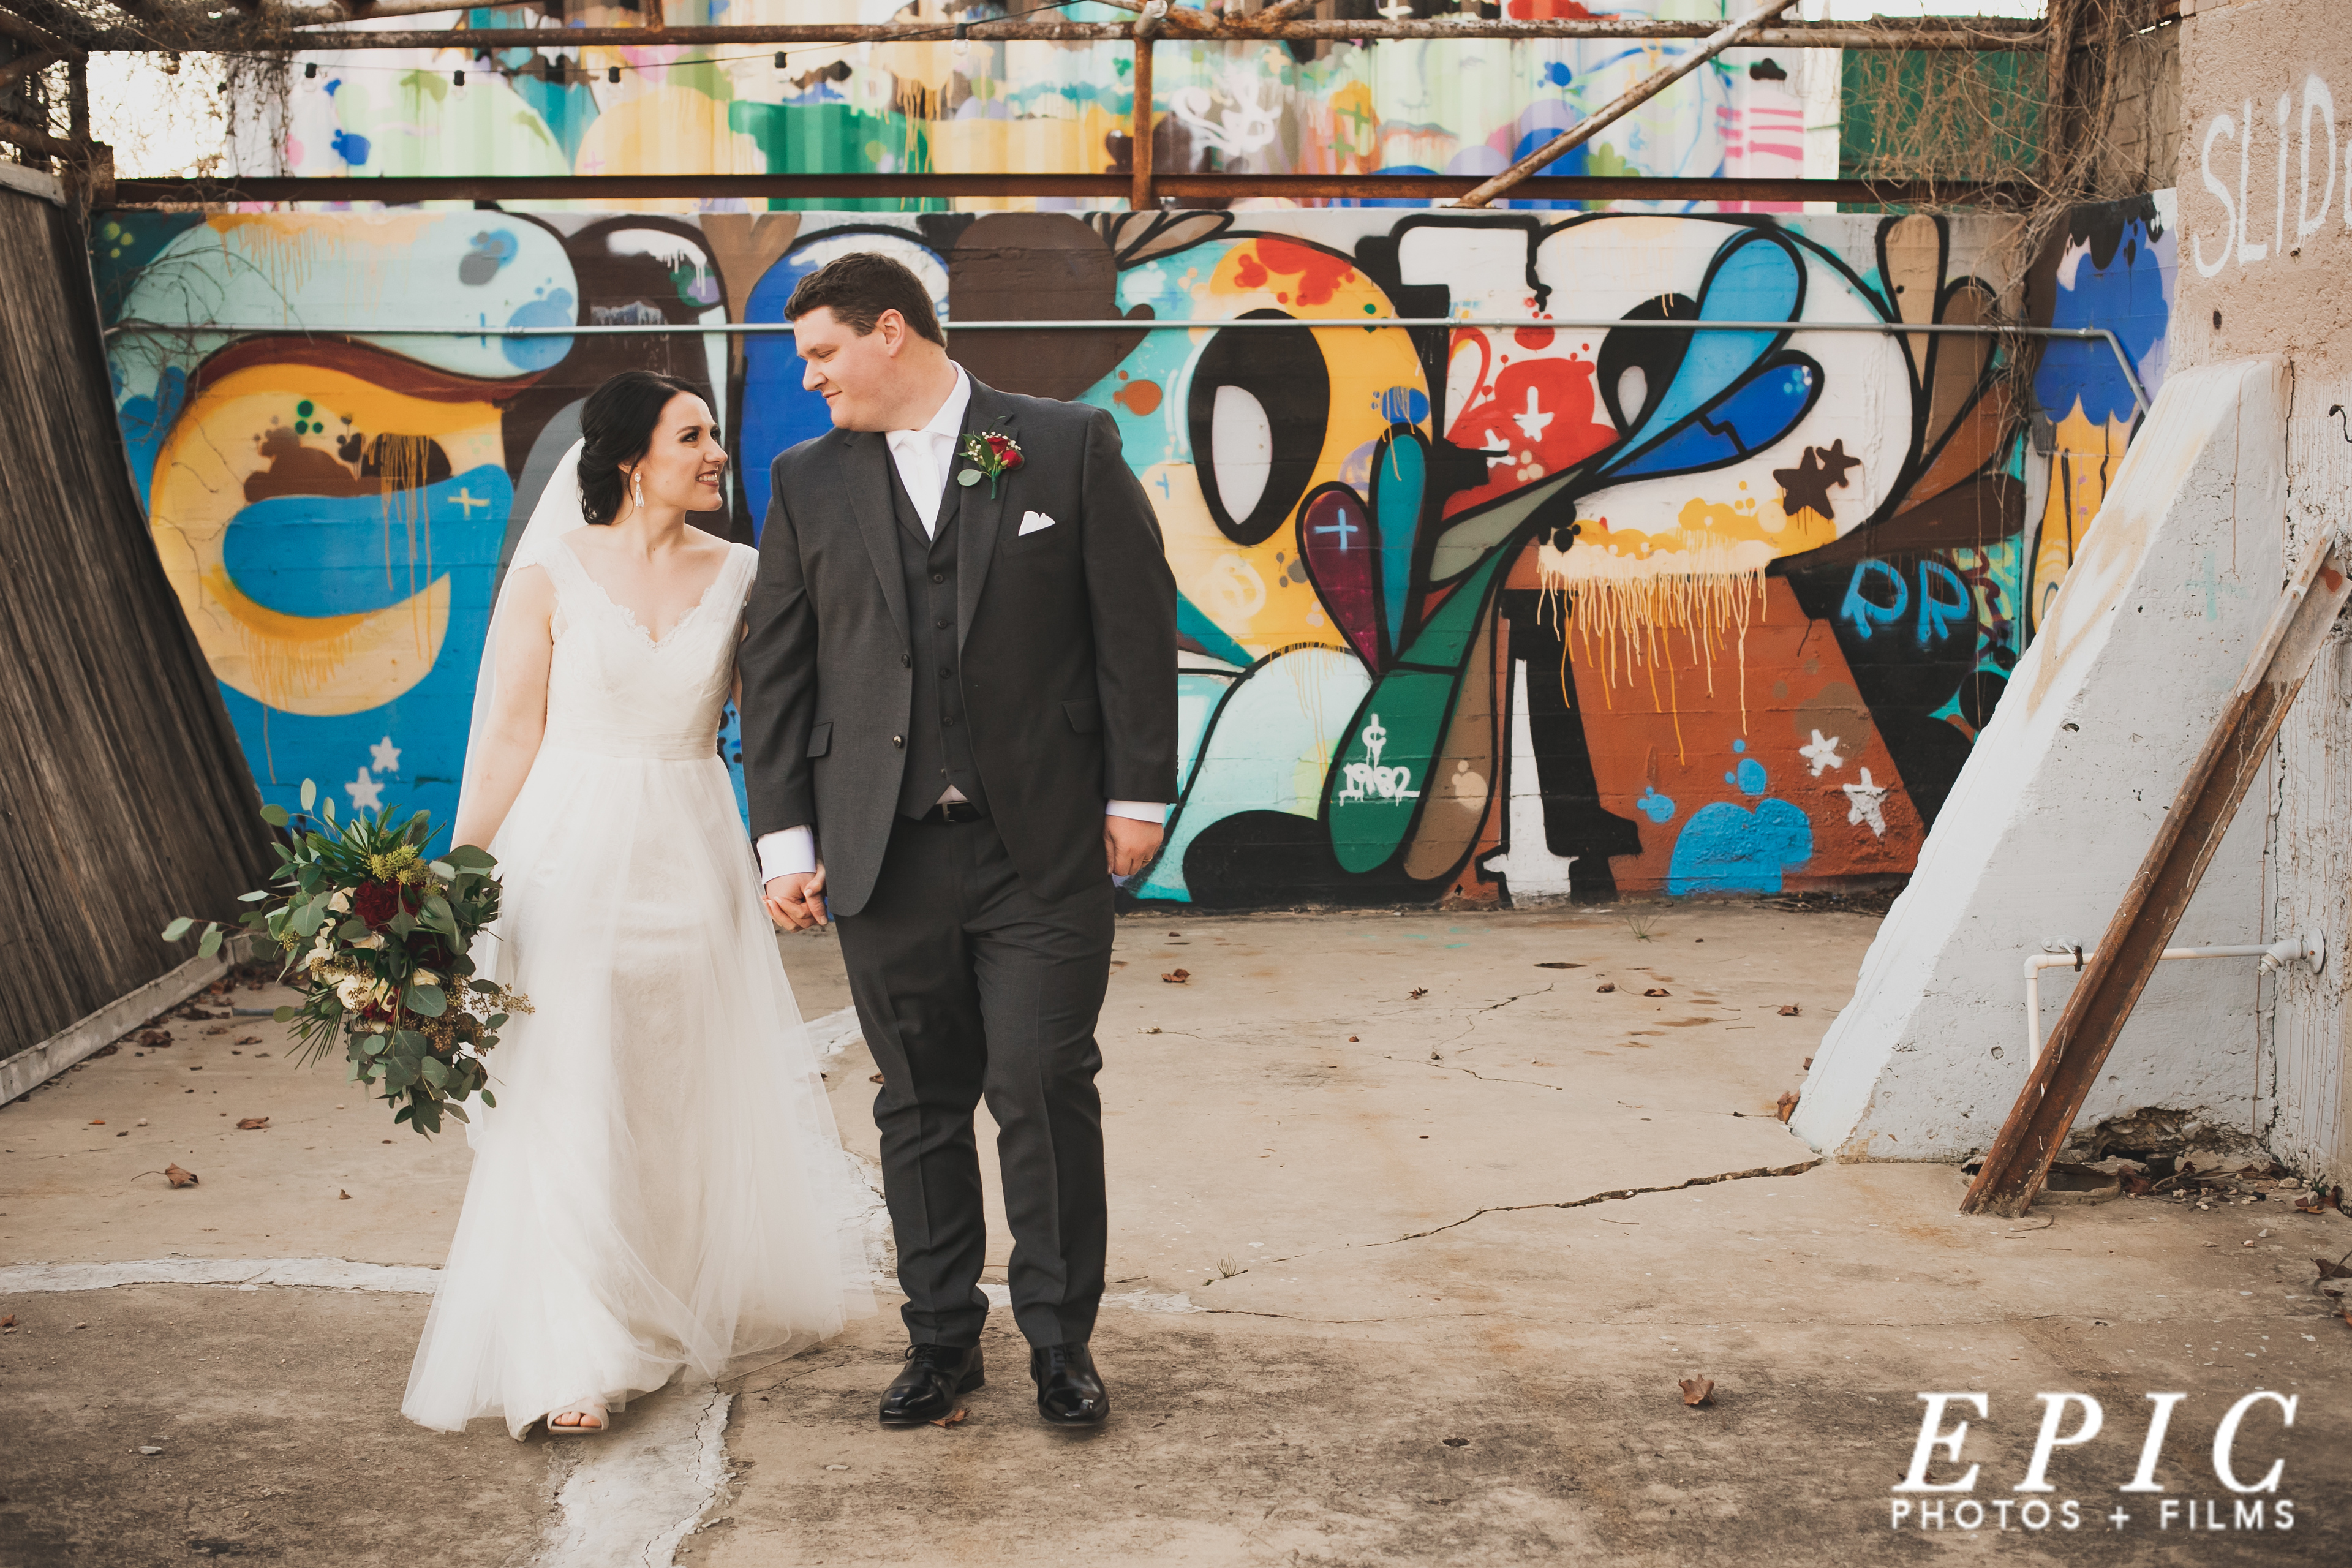 Colorful city background for wedding day couples portraits